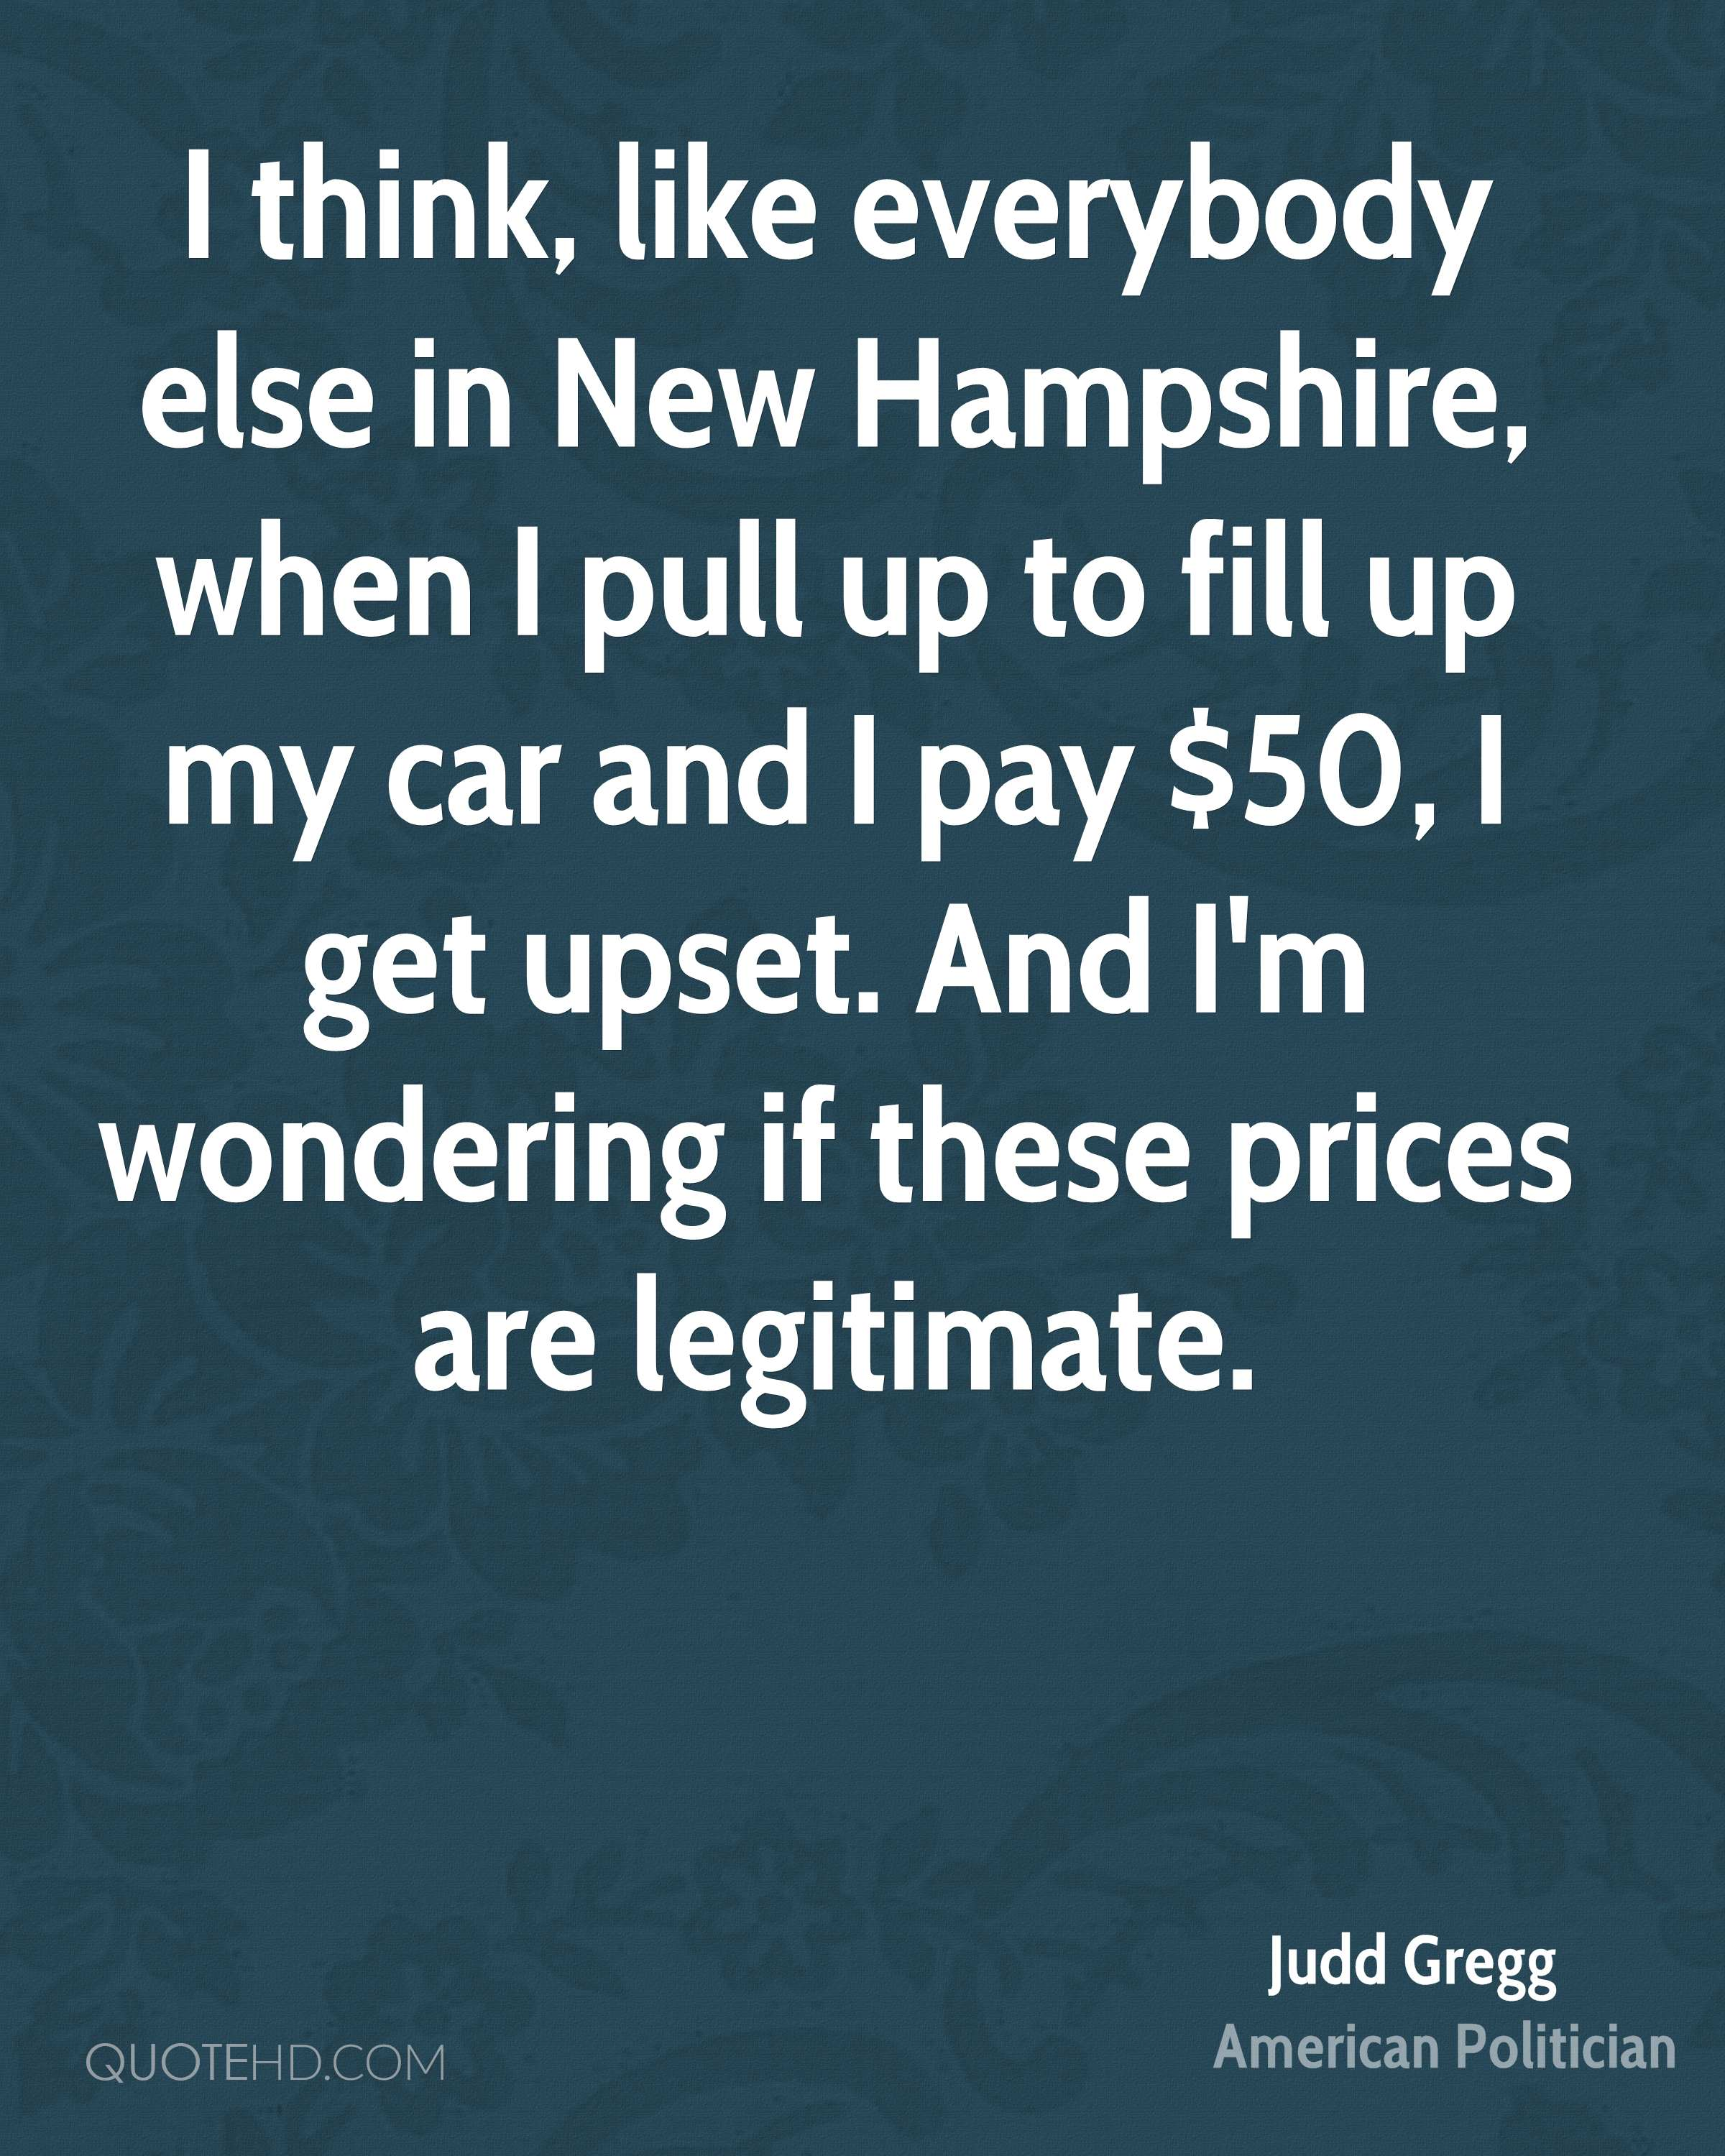 I think, like everybody else in New Hampshire, when I pull up to fill up my car and I pay $50, I get upset. And I'm wondering if these prices are legitimate.